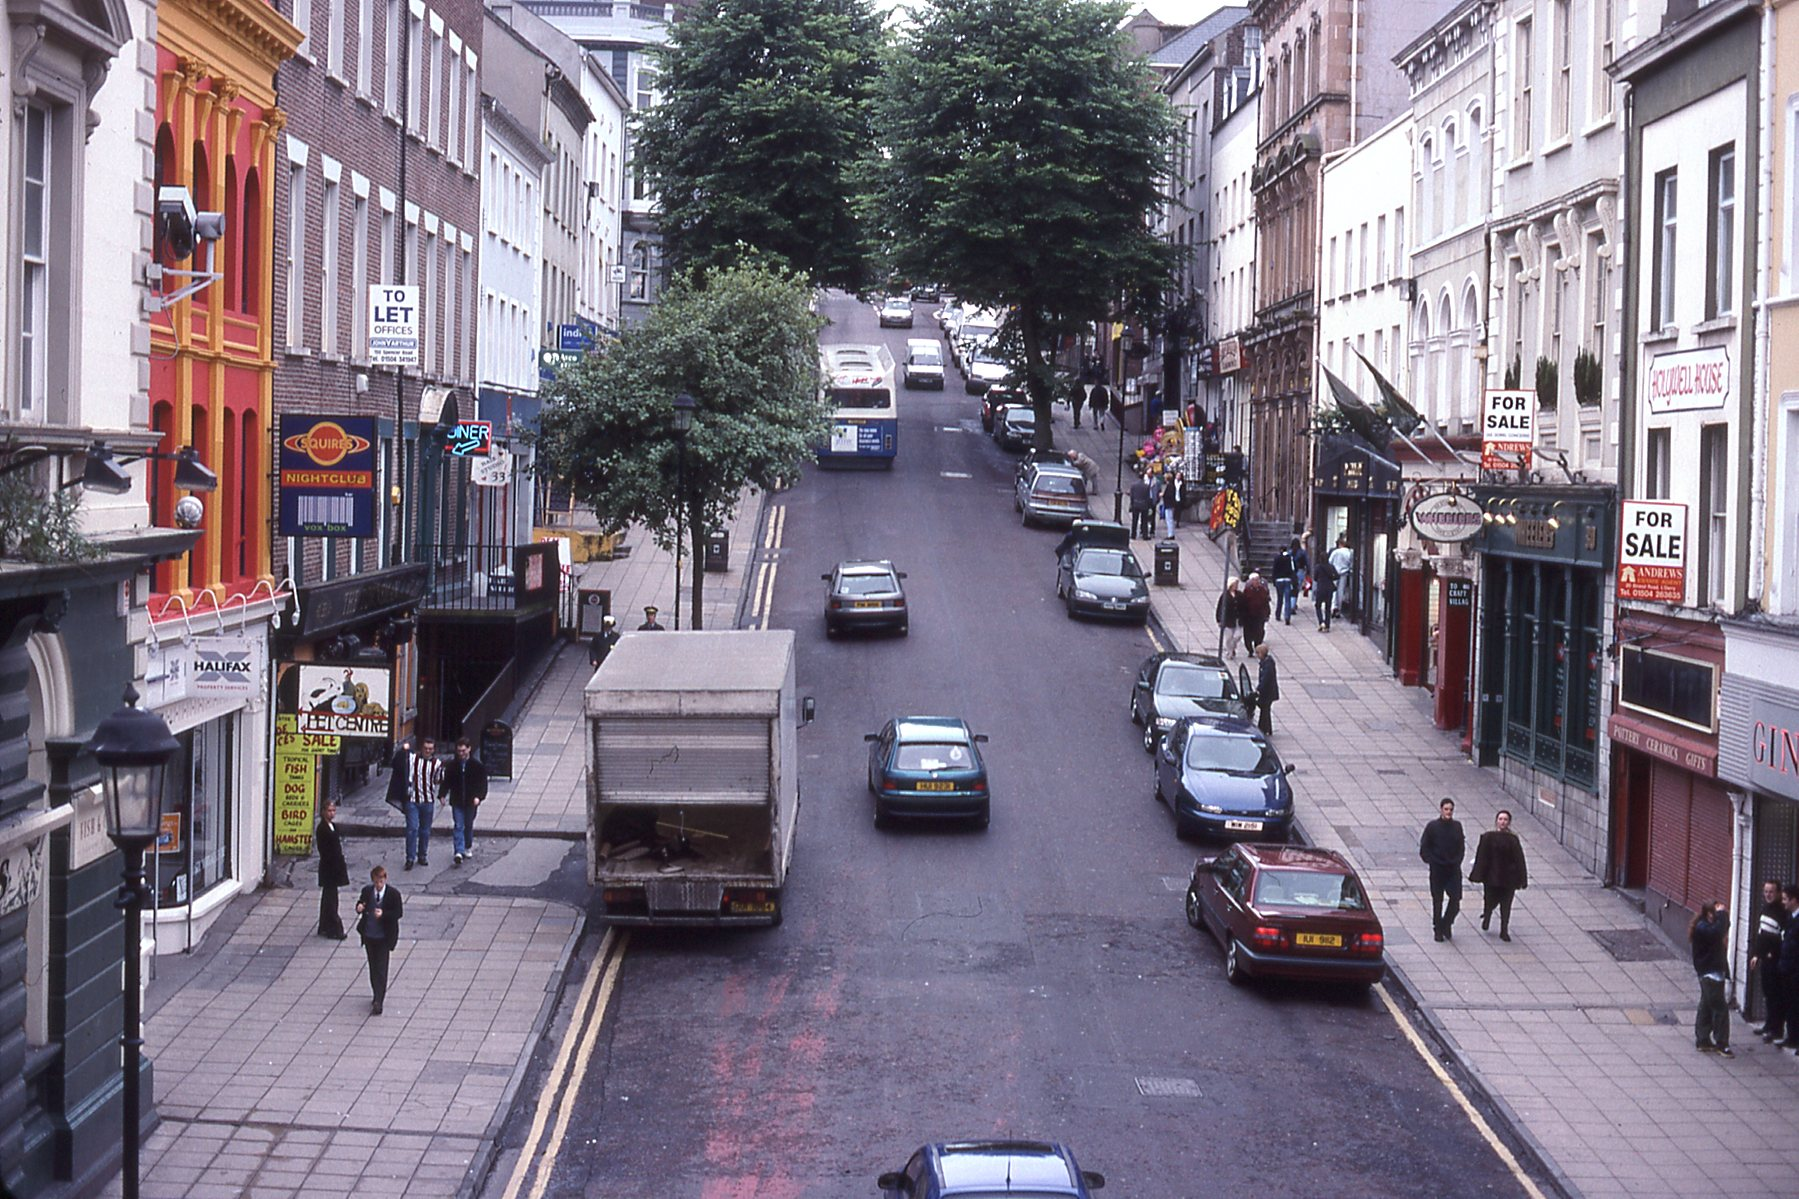 Shipquay Street in Derry from the city wall.